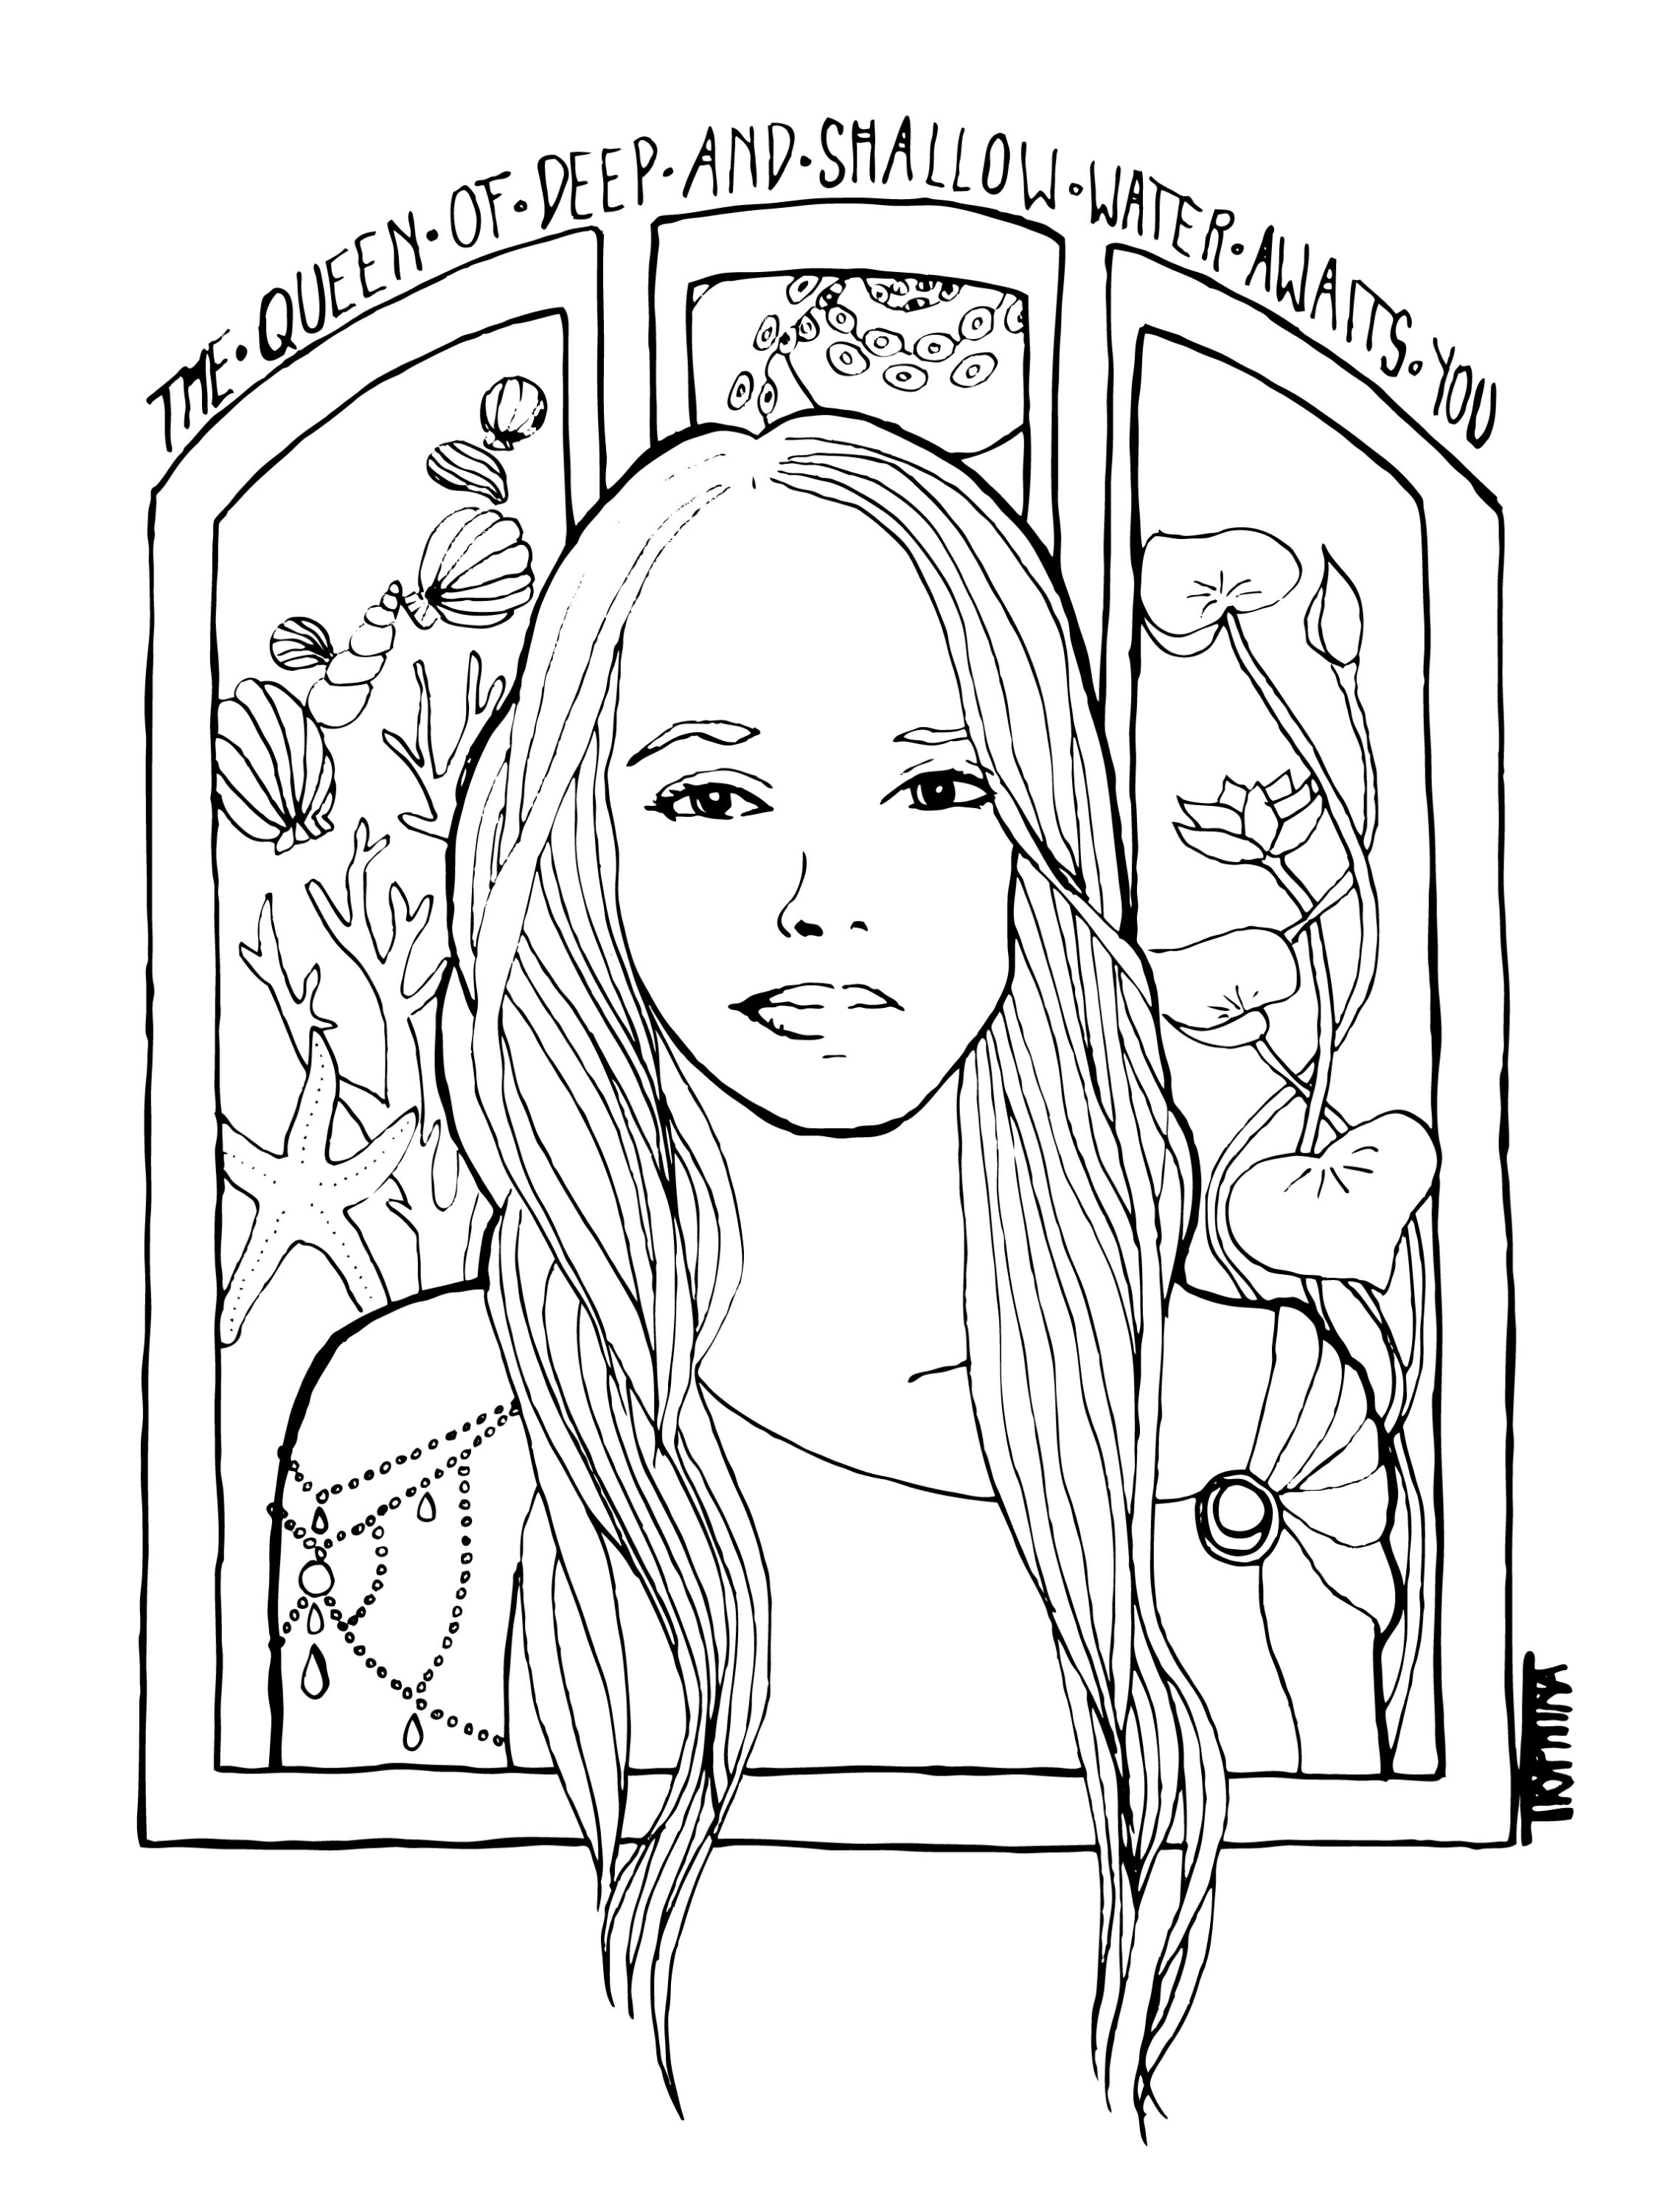 Art nouveau style portrait of a young woman surrounded by waterplants